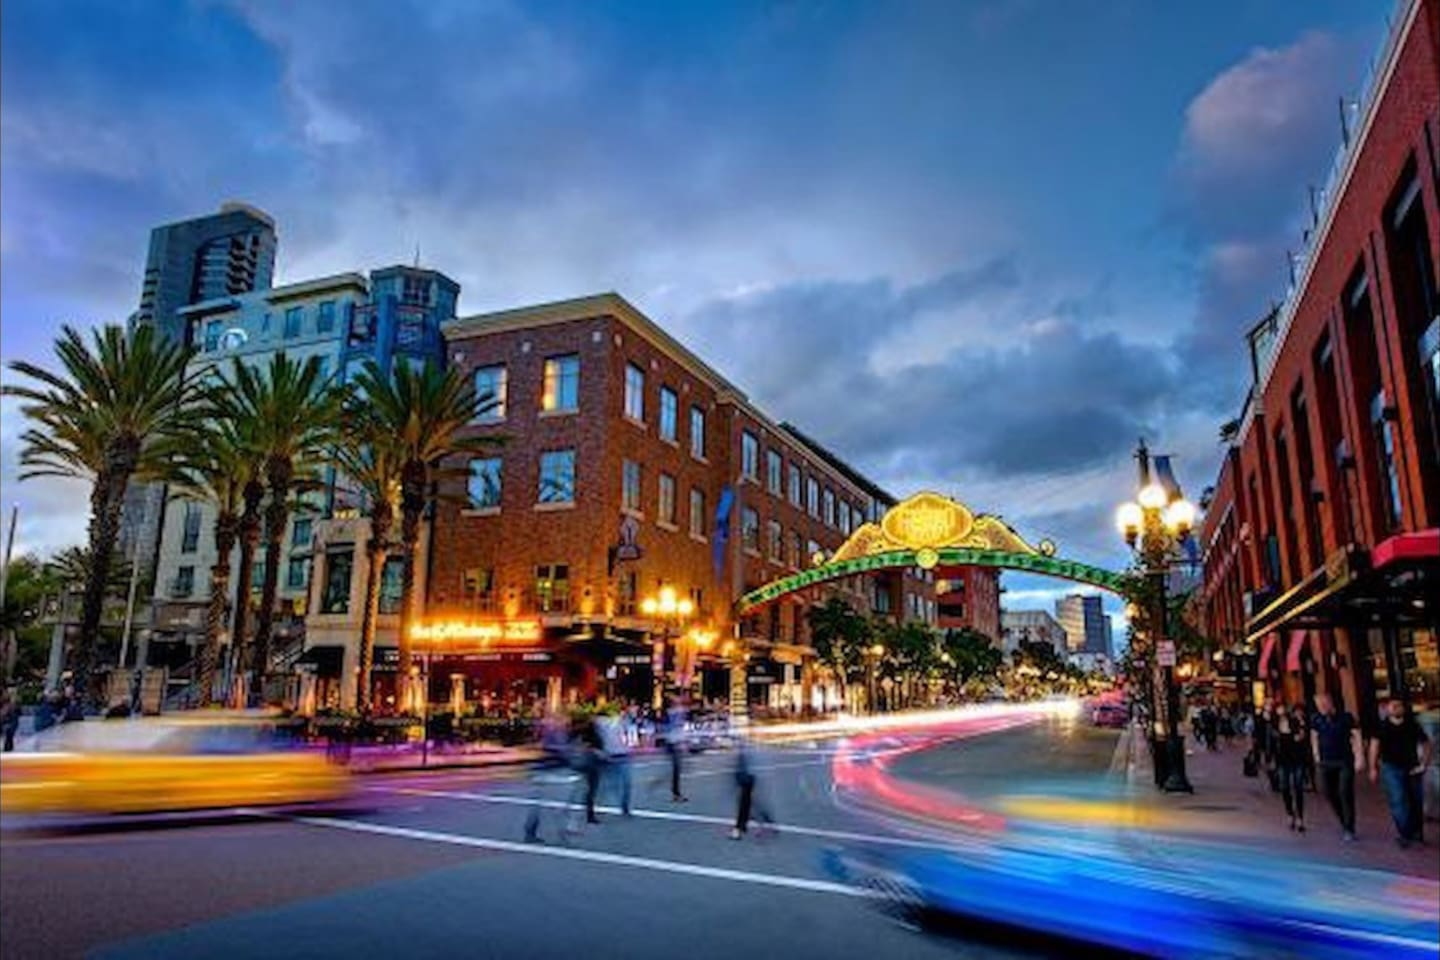 Close to the Gaslamp